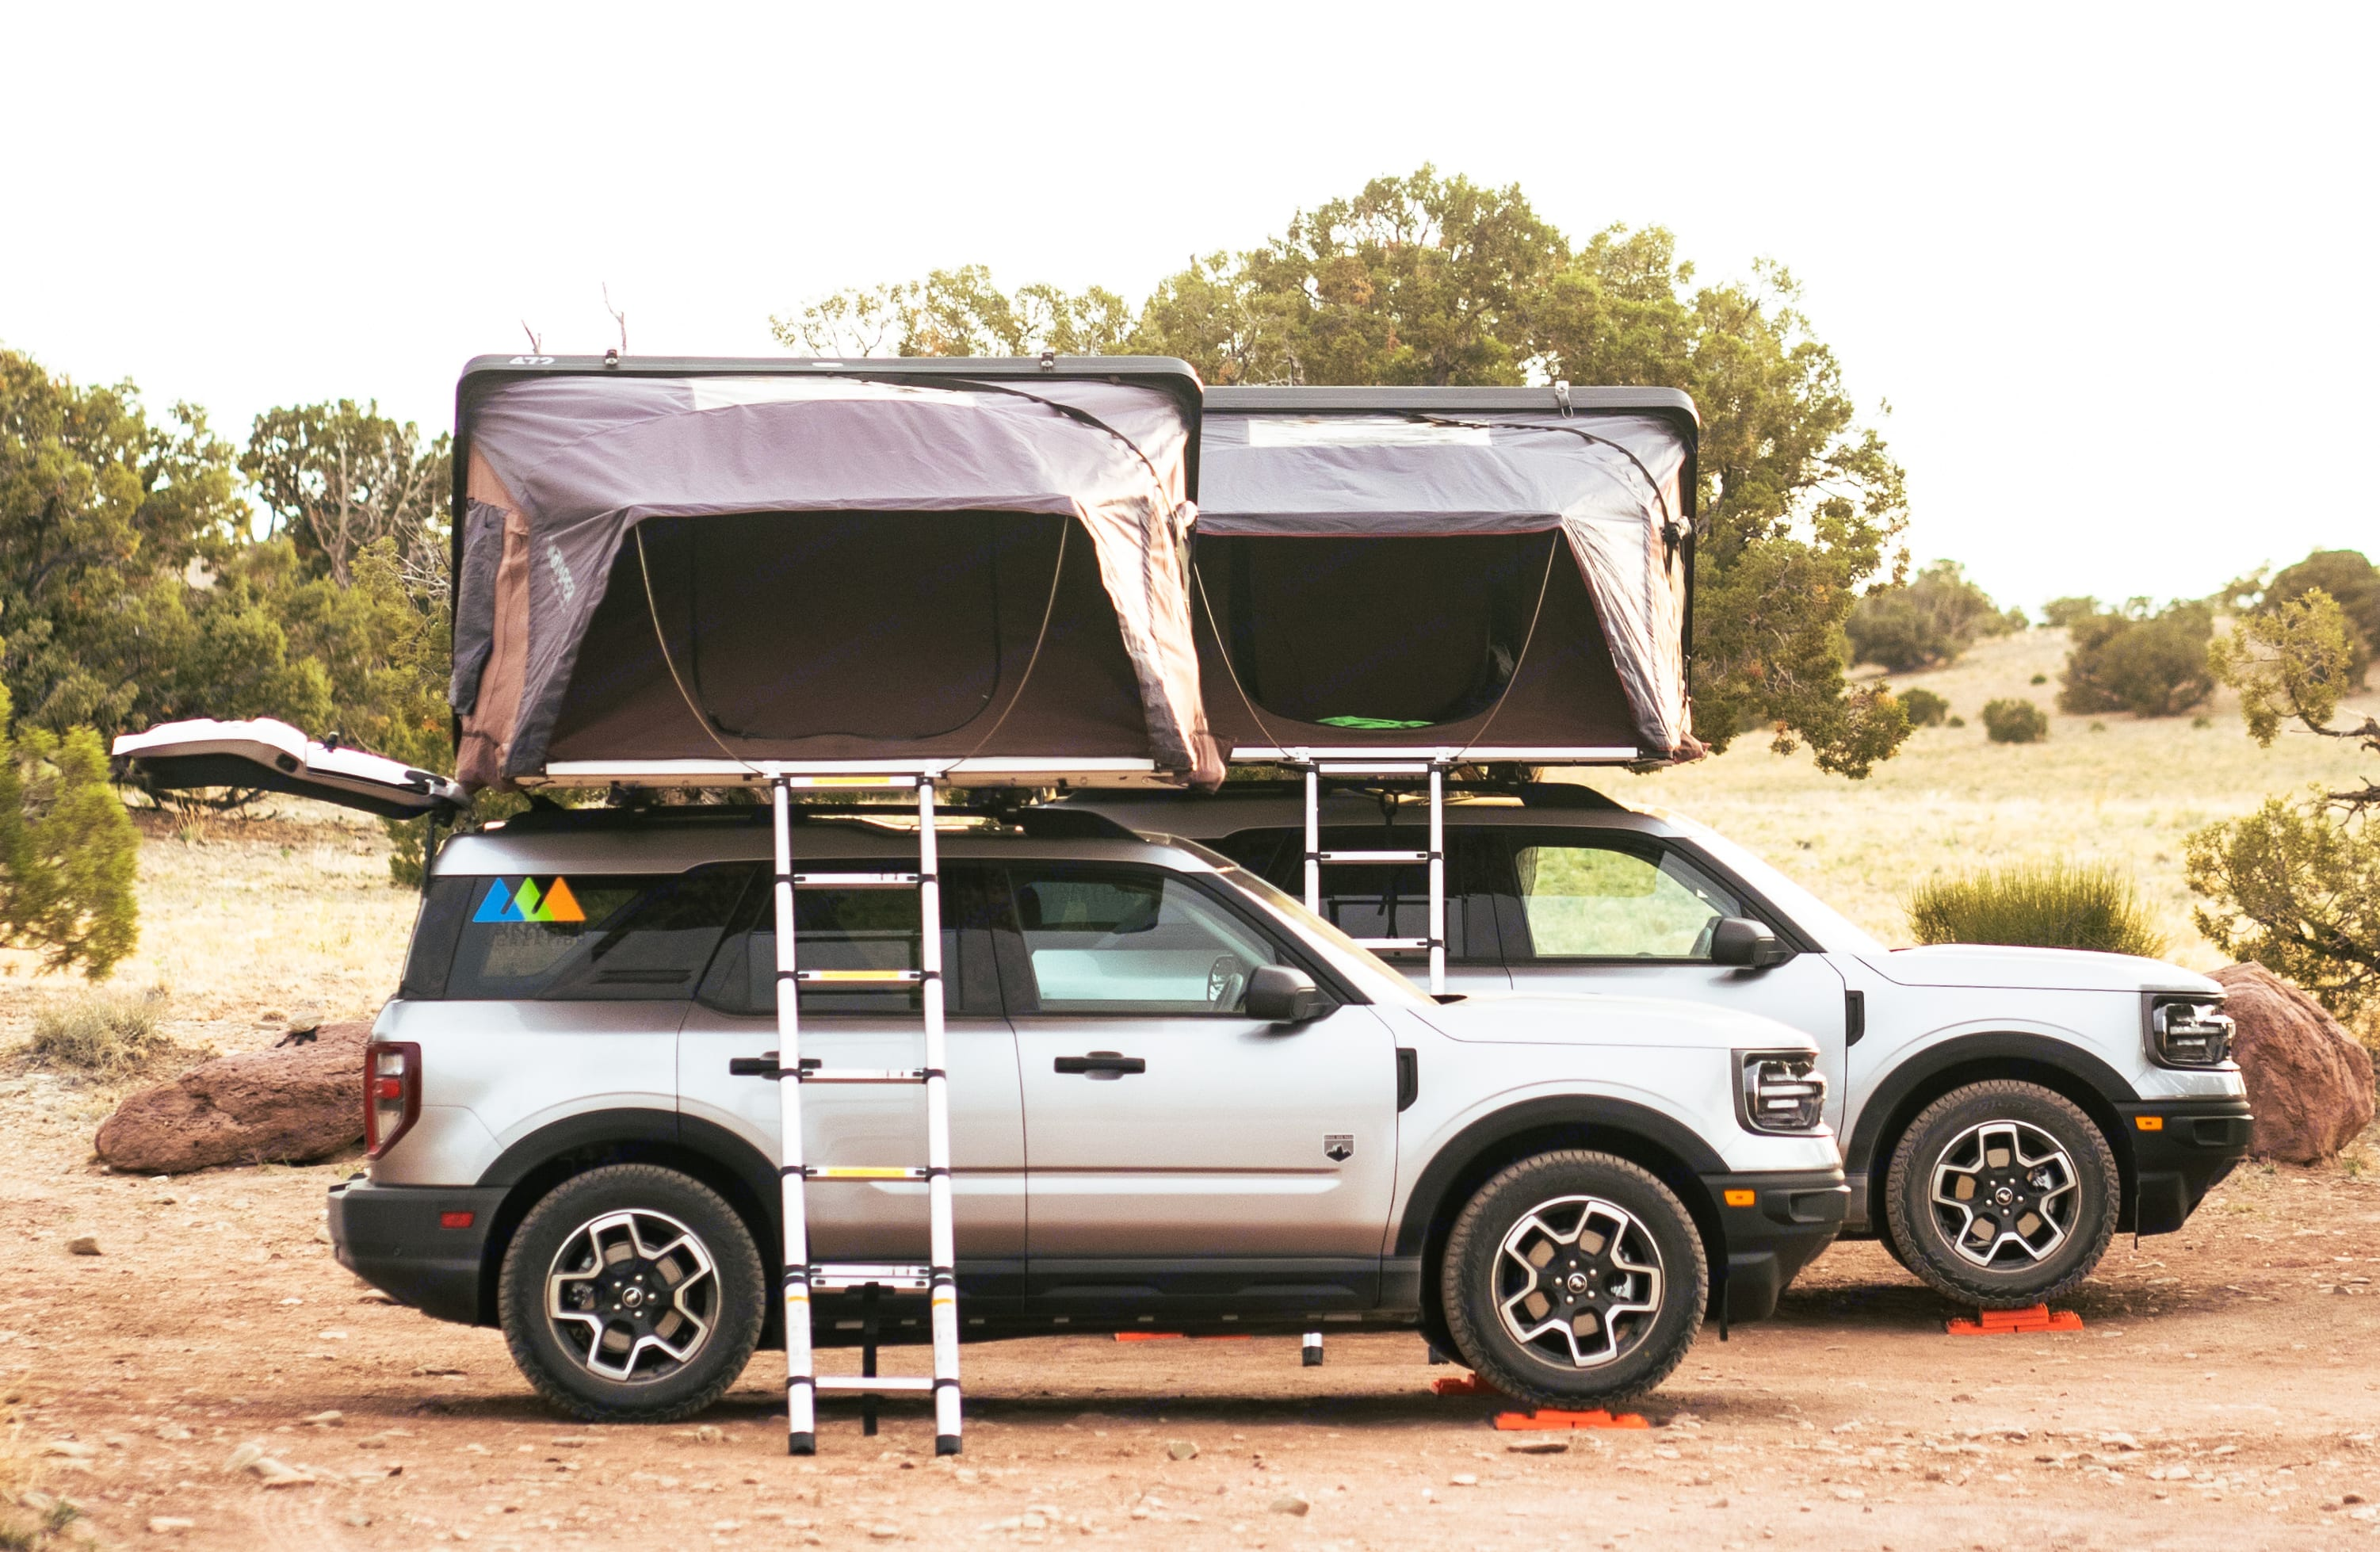 Brand new Ford Broncos with iKamper SkyCamp rooftop tents and camping equipment.. Ford Bronco Sport 2021